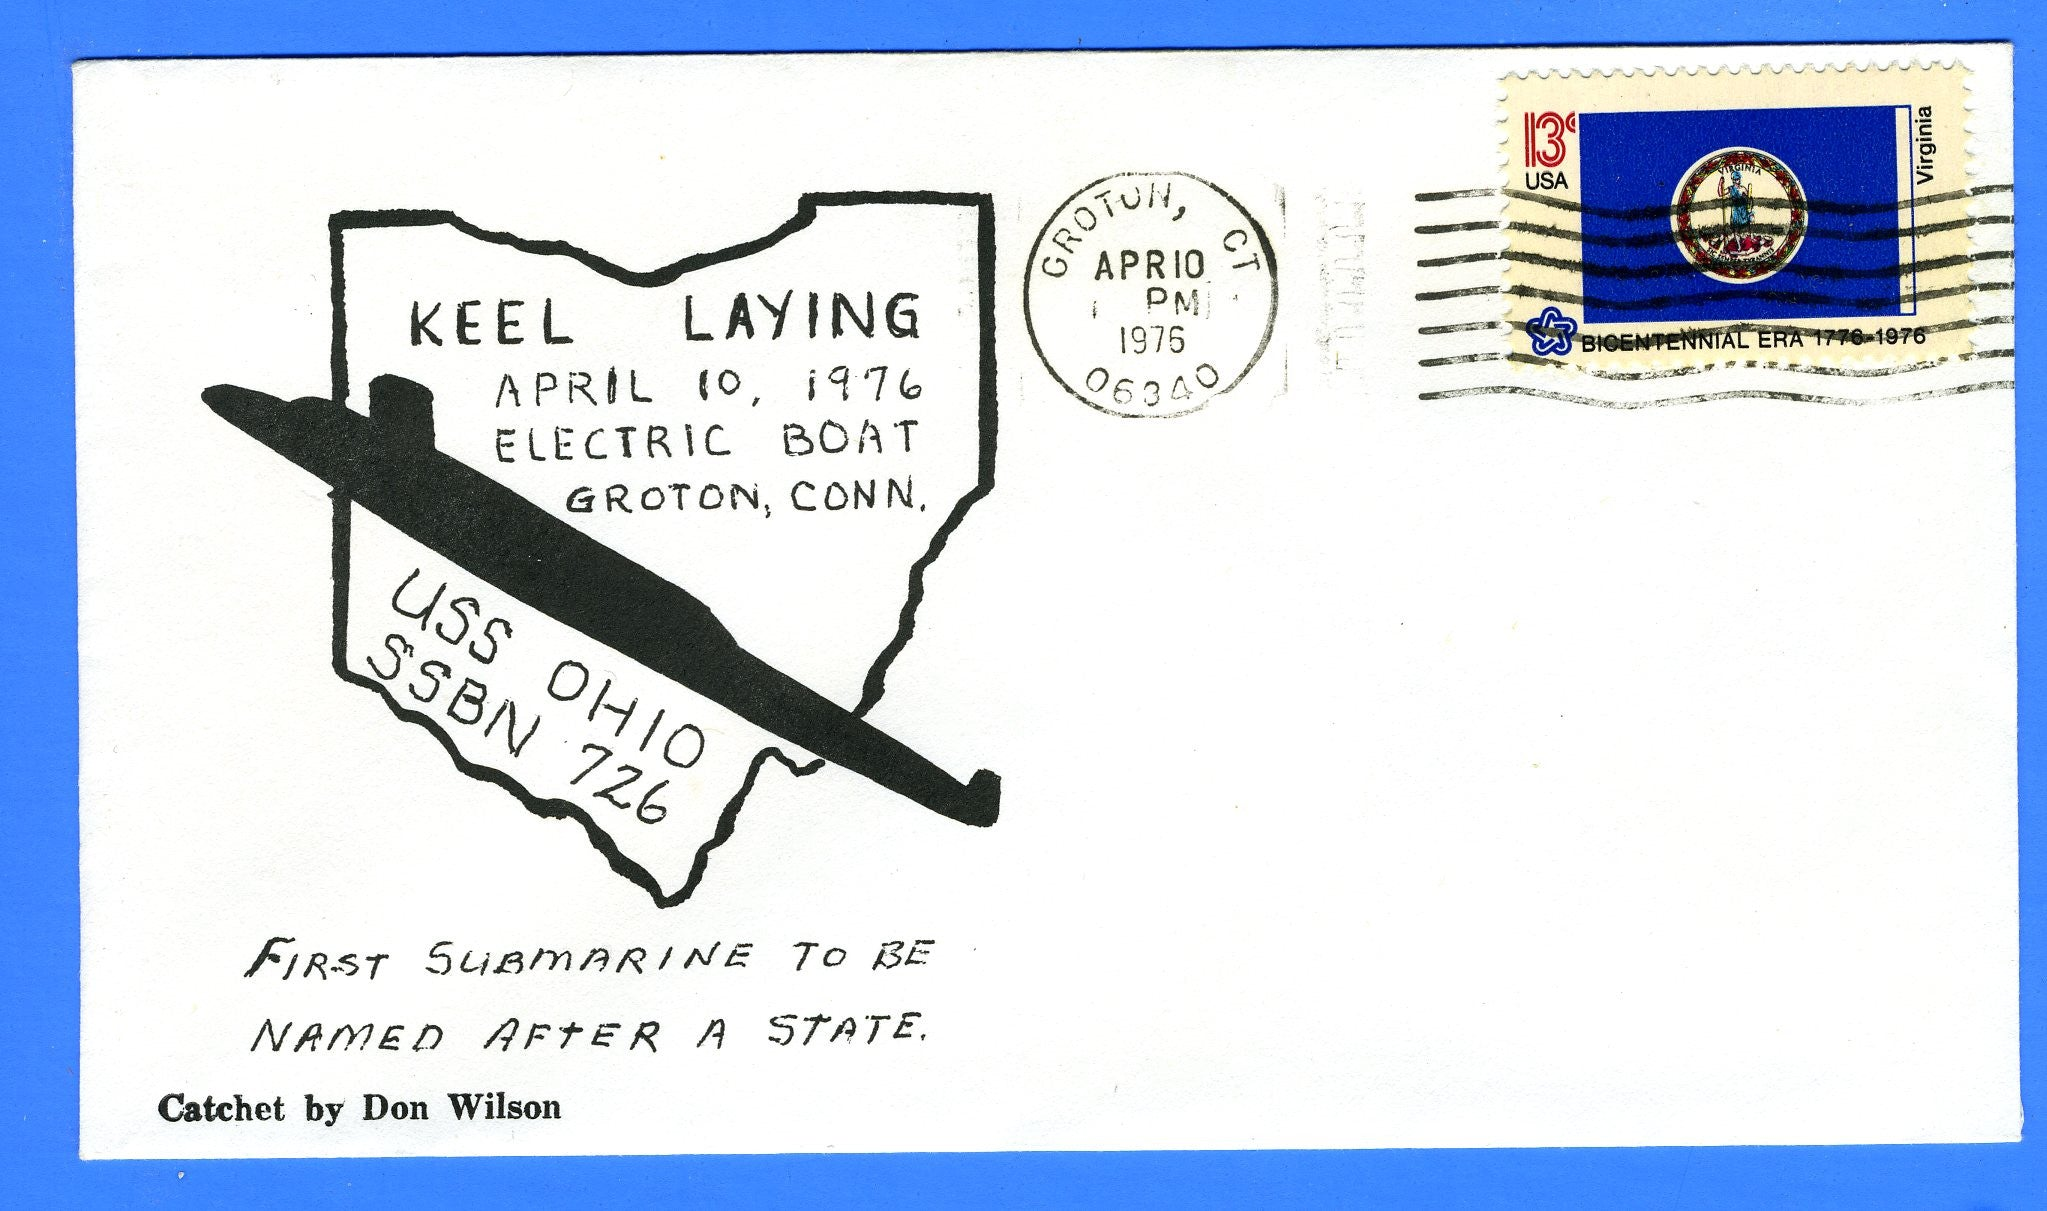 USS Ohio SSBN-726 Keel Laid Apr 10, 1976 - First DRW Cachet